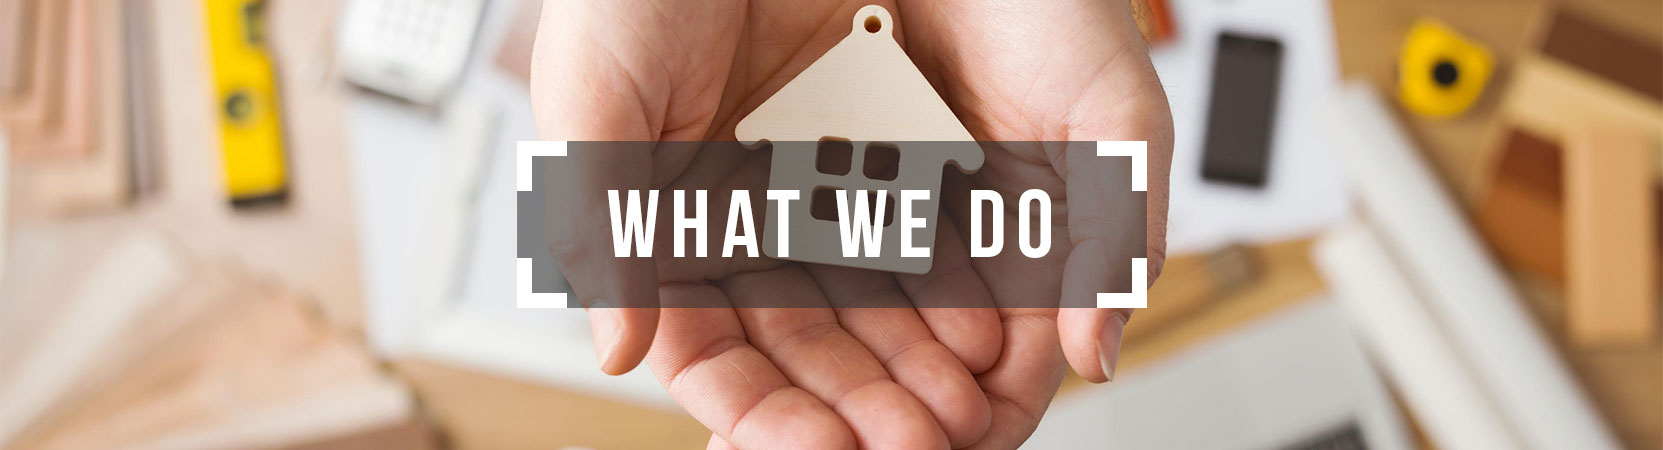 Efl what we do banner